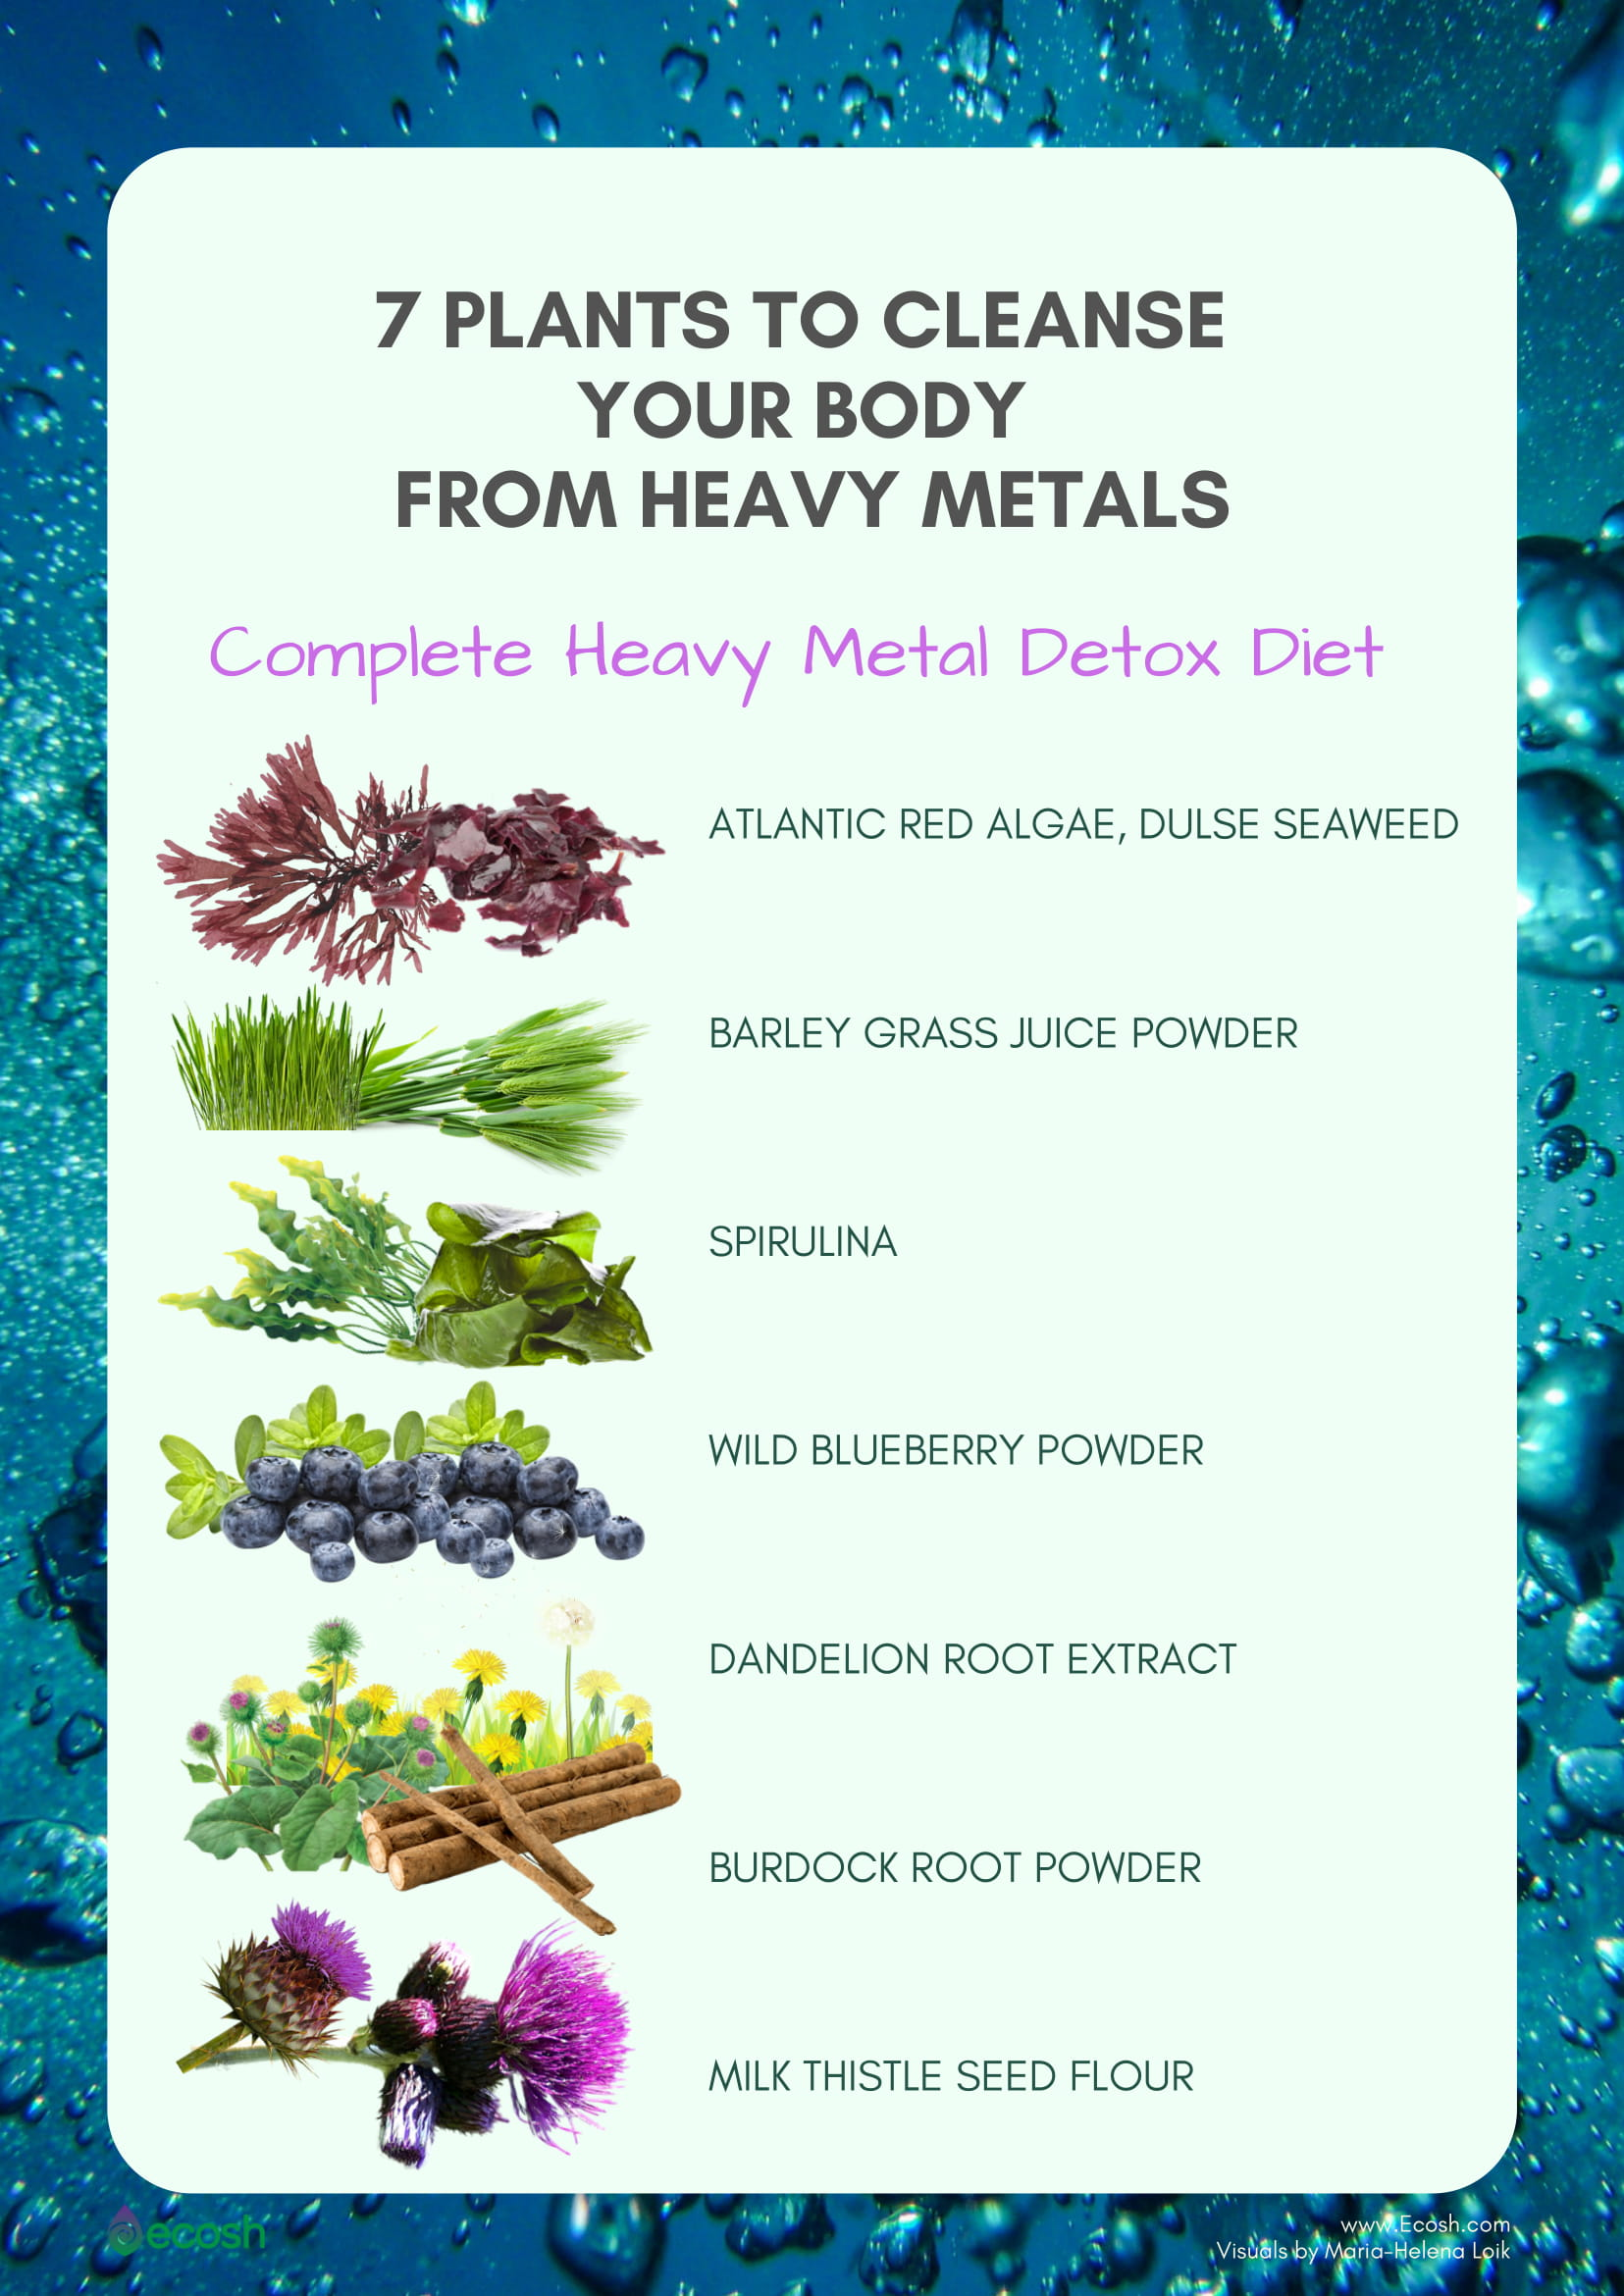 Full Detox 7 Plants To Cleanse Your Body From Heavy Metals Ecosh Life